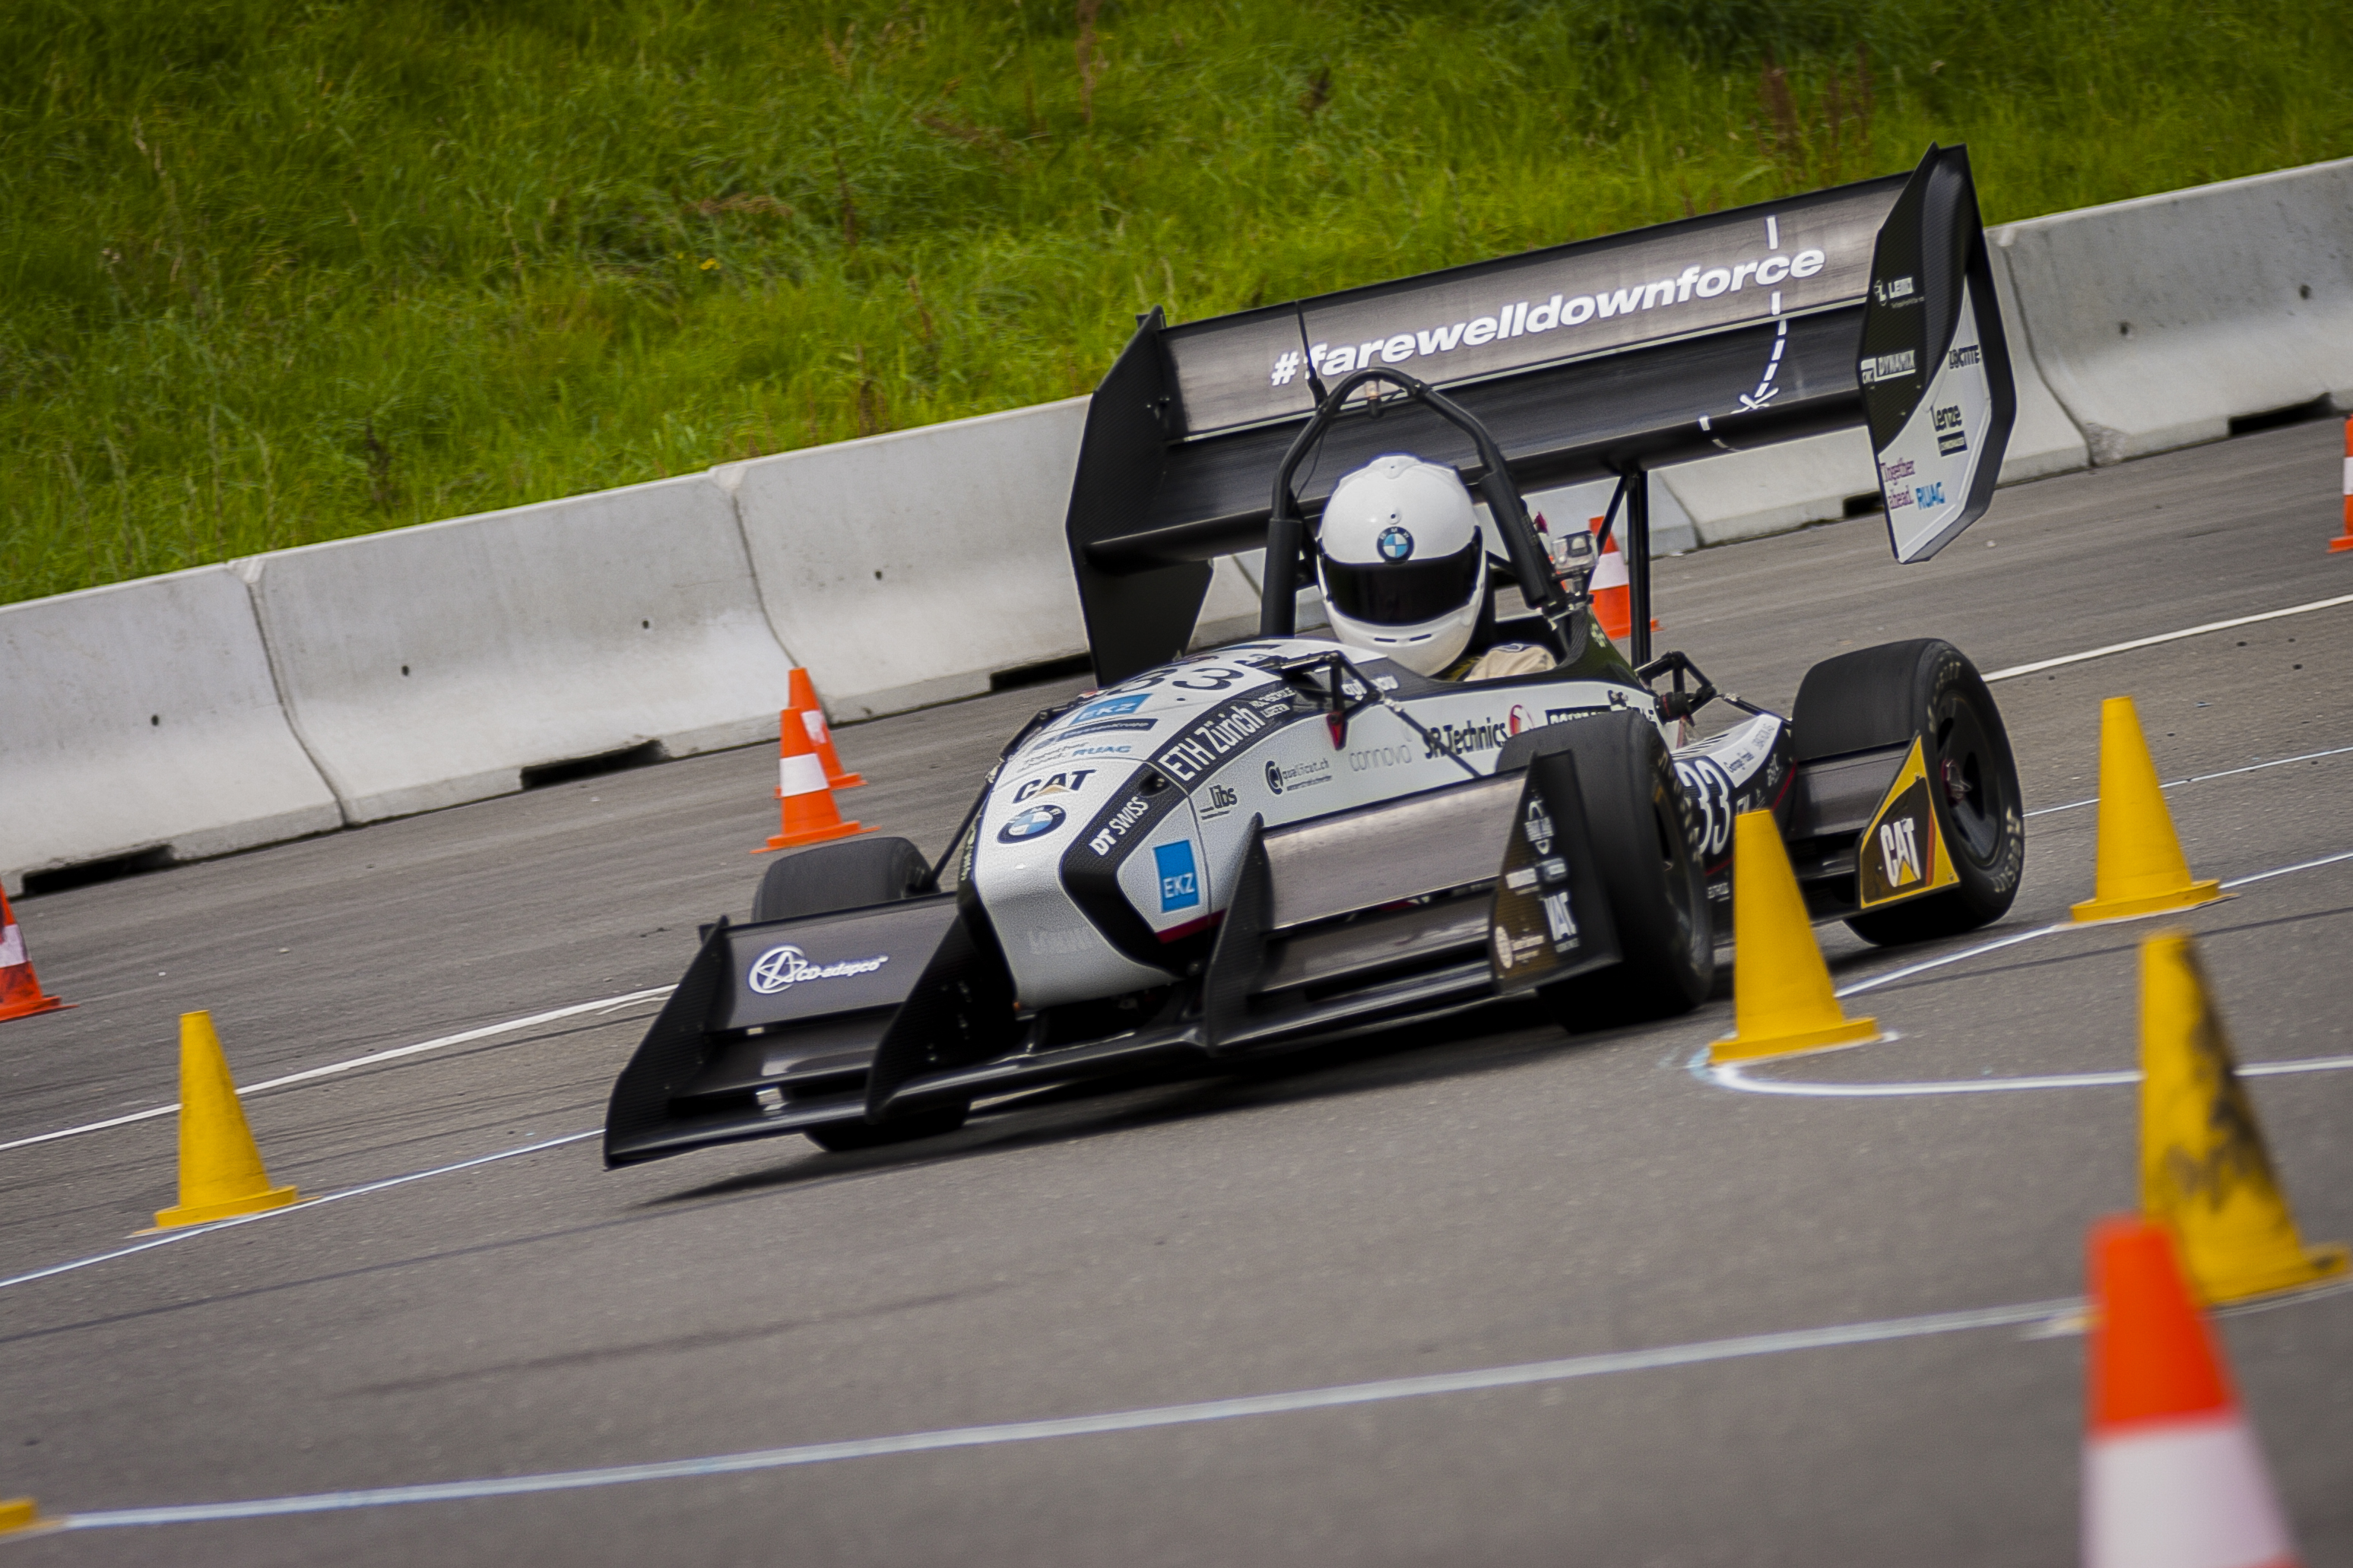 The Grimsel Electric Racing Car Today Broke Previous World Record For Acceleration In Cars Picture Amz Jpeg 3 8 Mb